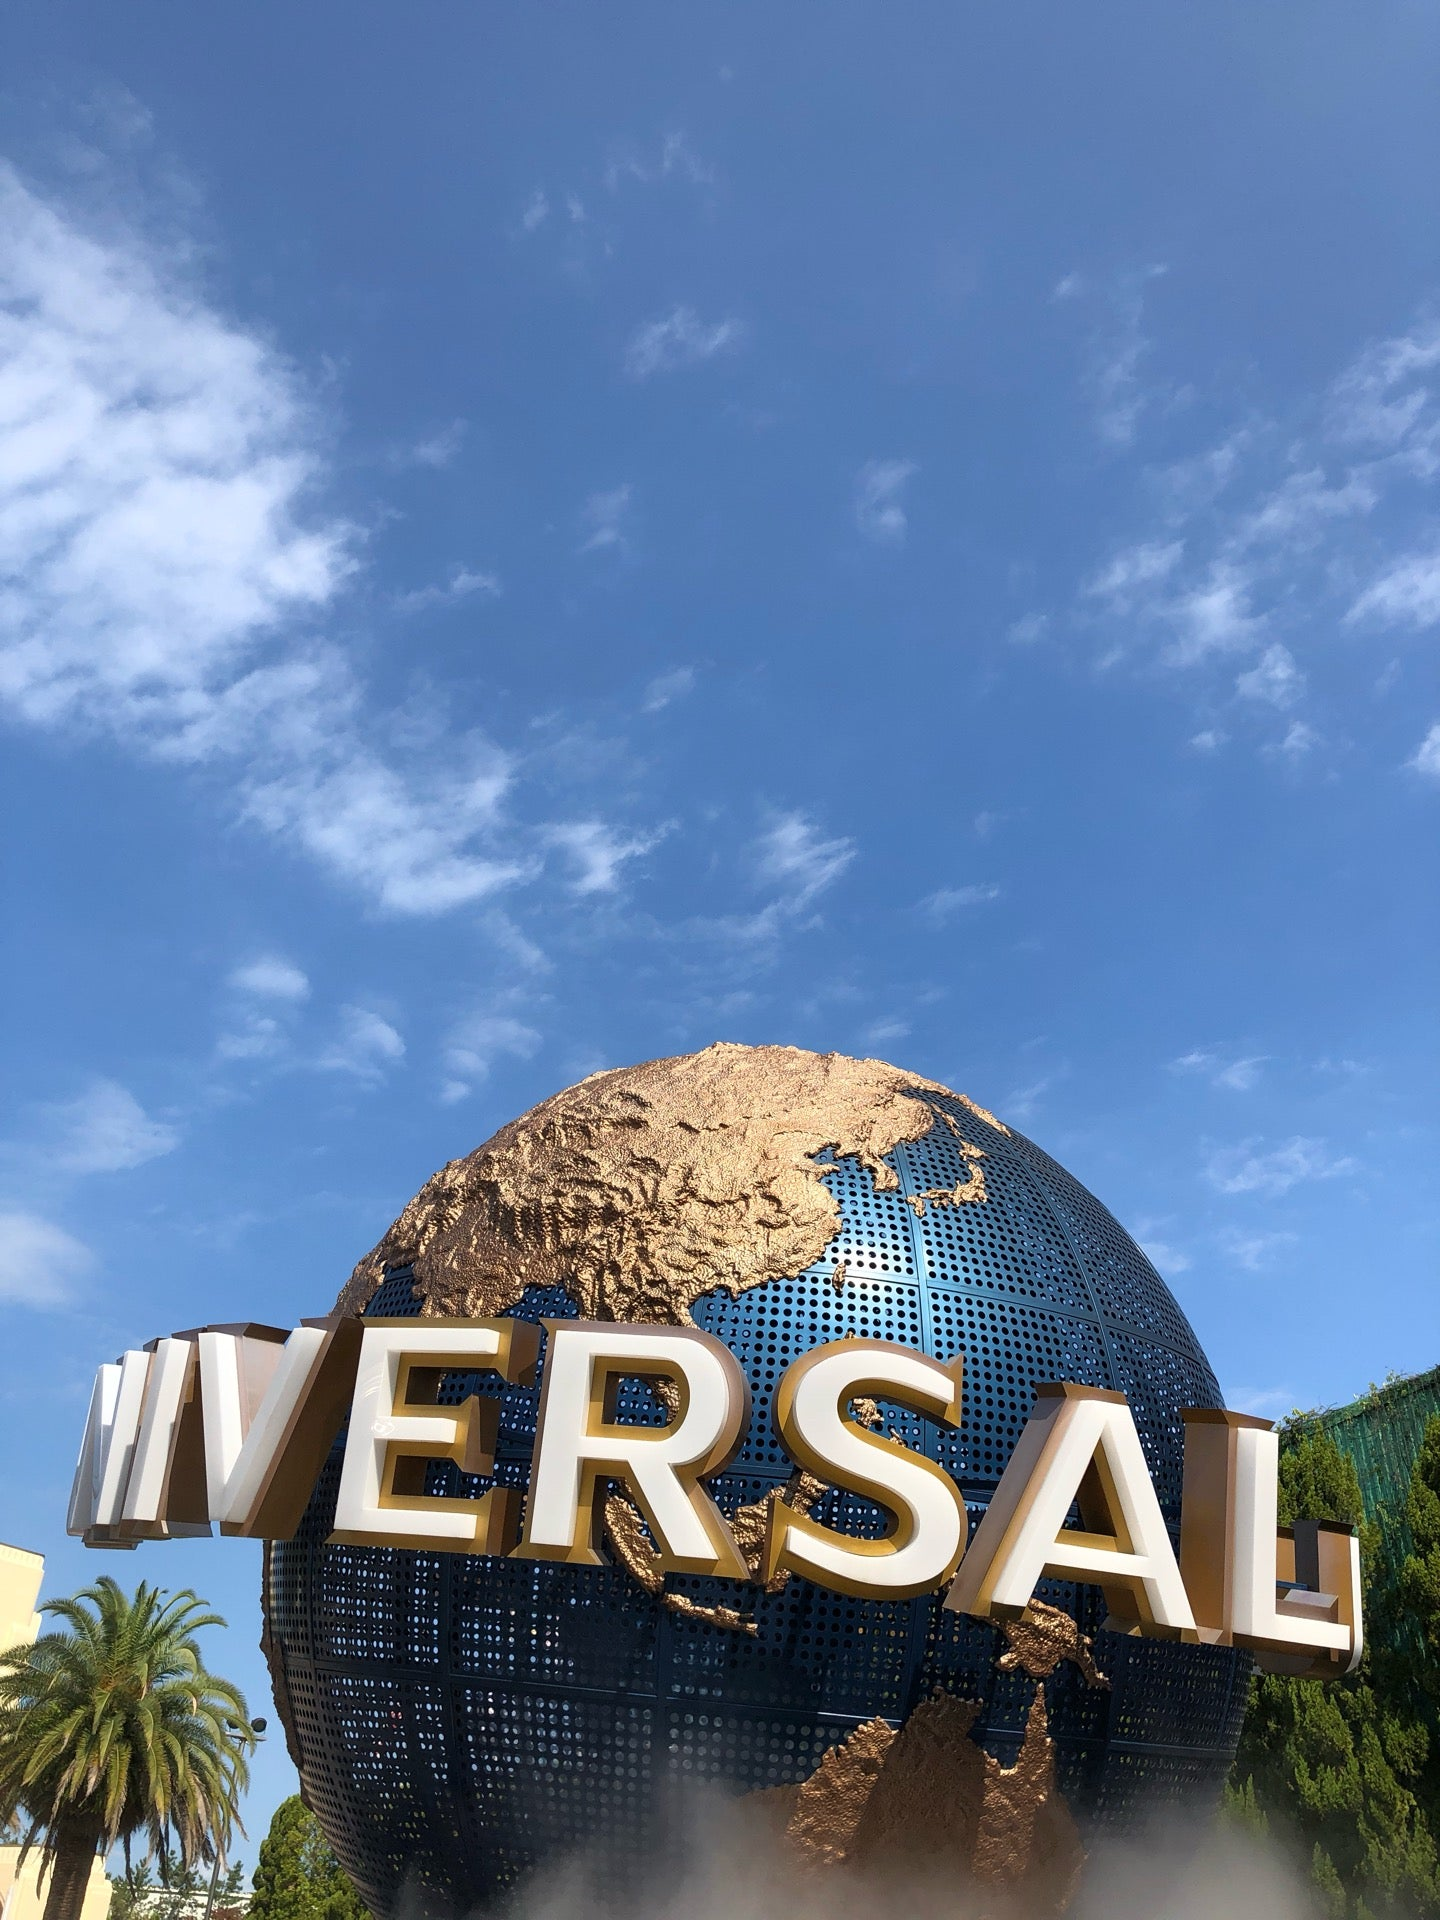 I'm at Universal Globe - @usj_official in 大阪市, 大阪府 https://t.co/4hVsOTz9o4 https://t.co/VhCvhbXQEH